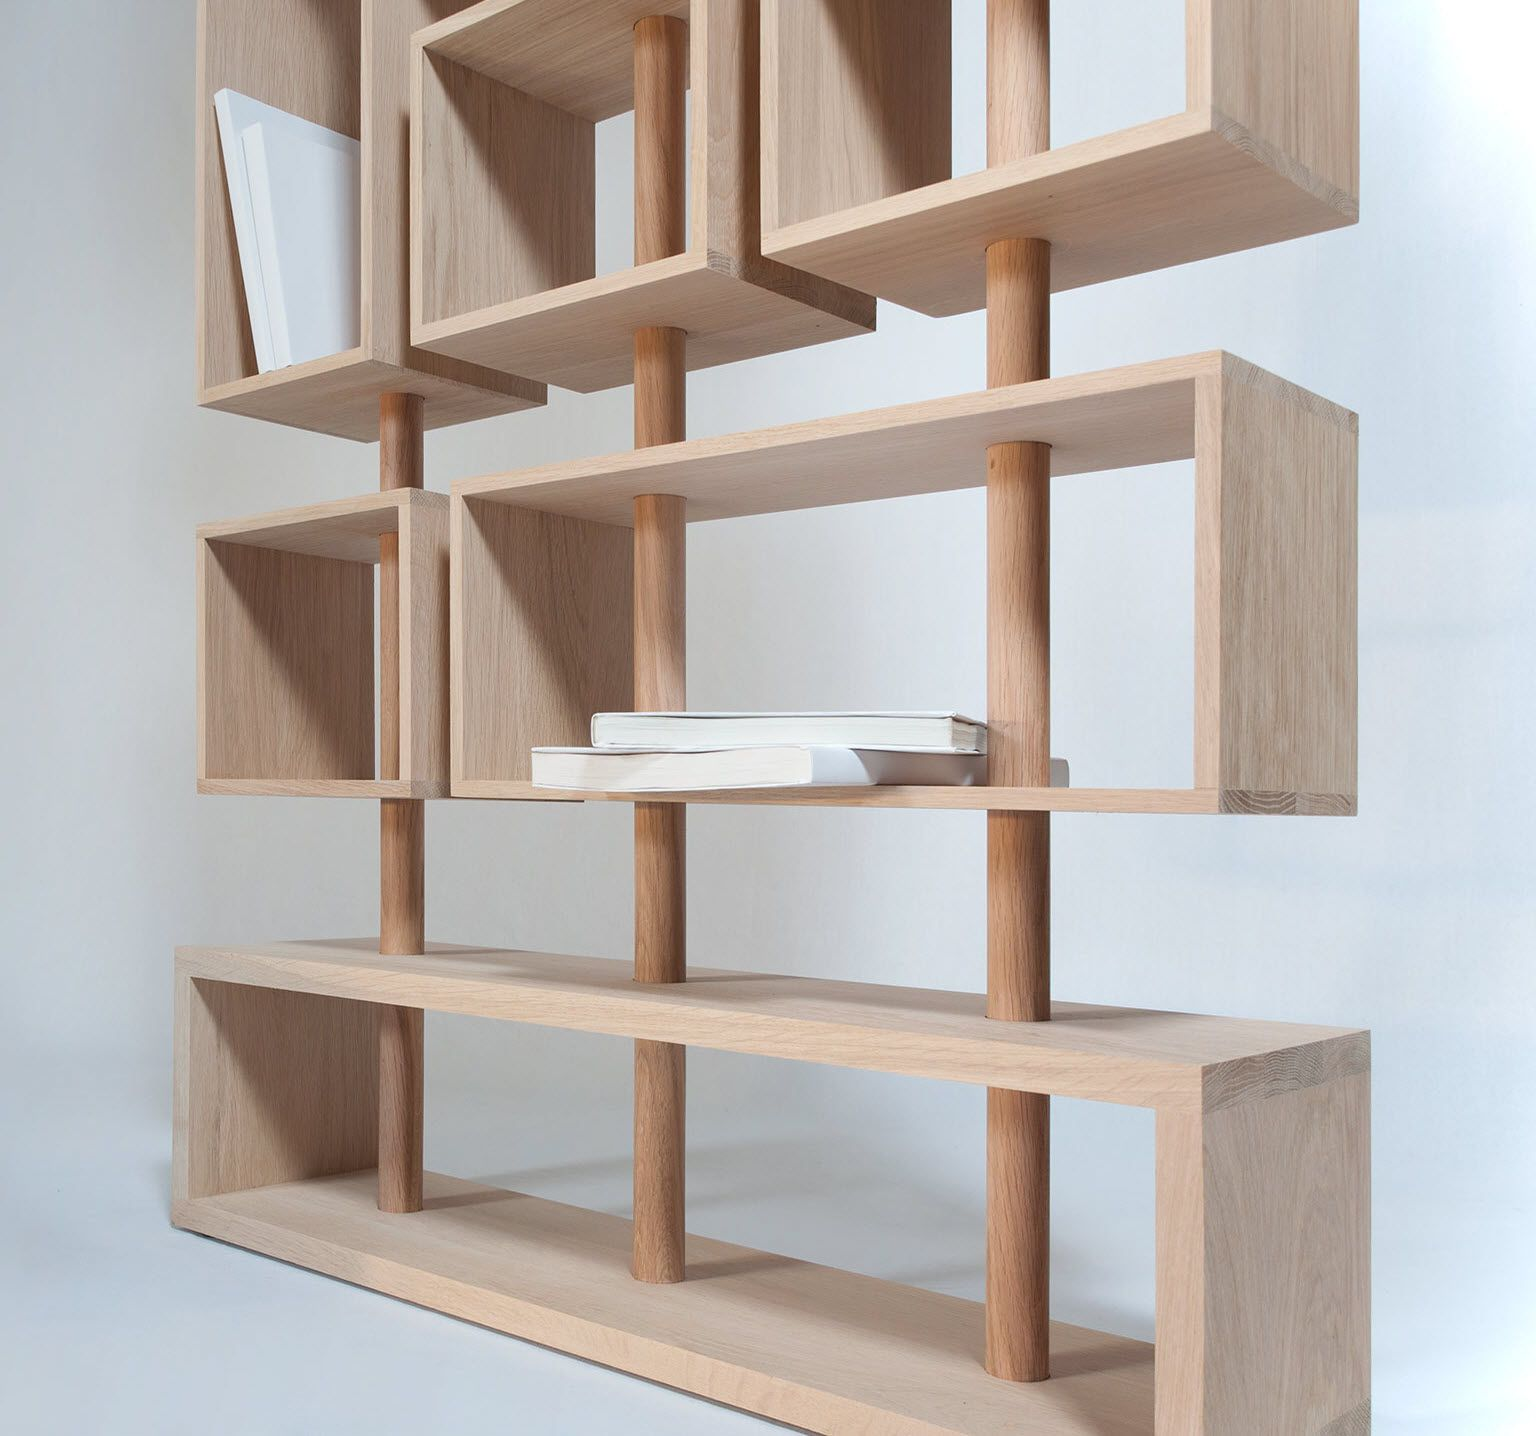 Accessories U0026 Furniture,Astonishing Natural Wood Modular Shelving Units  With Cool Rectangular Shelf Complete With